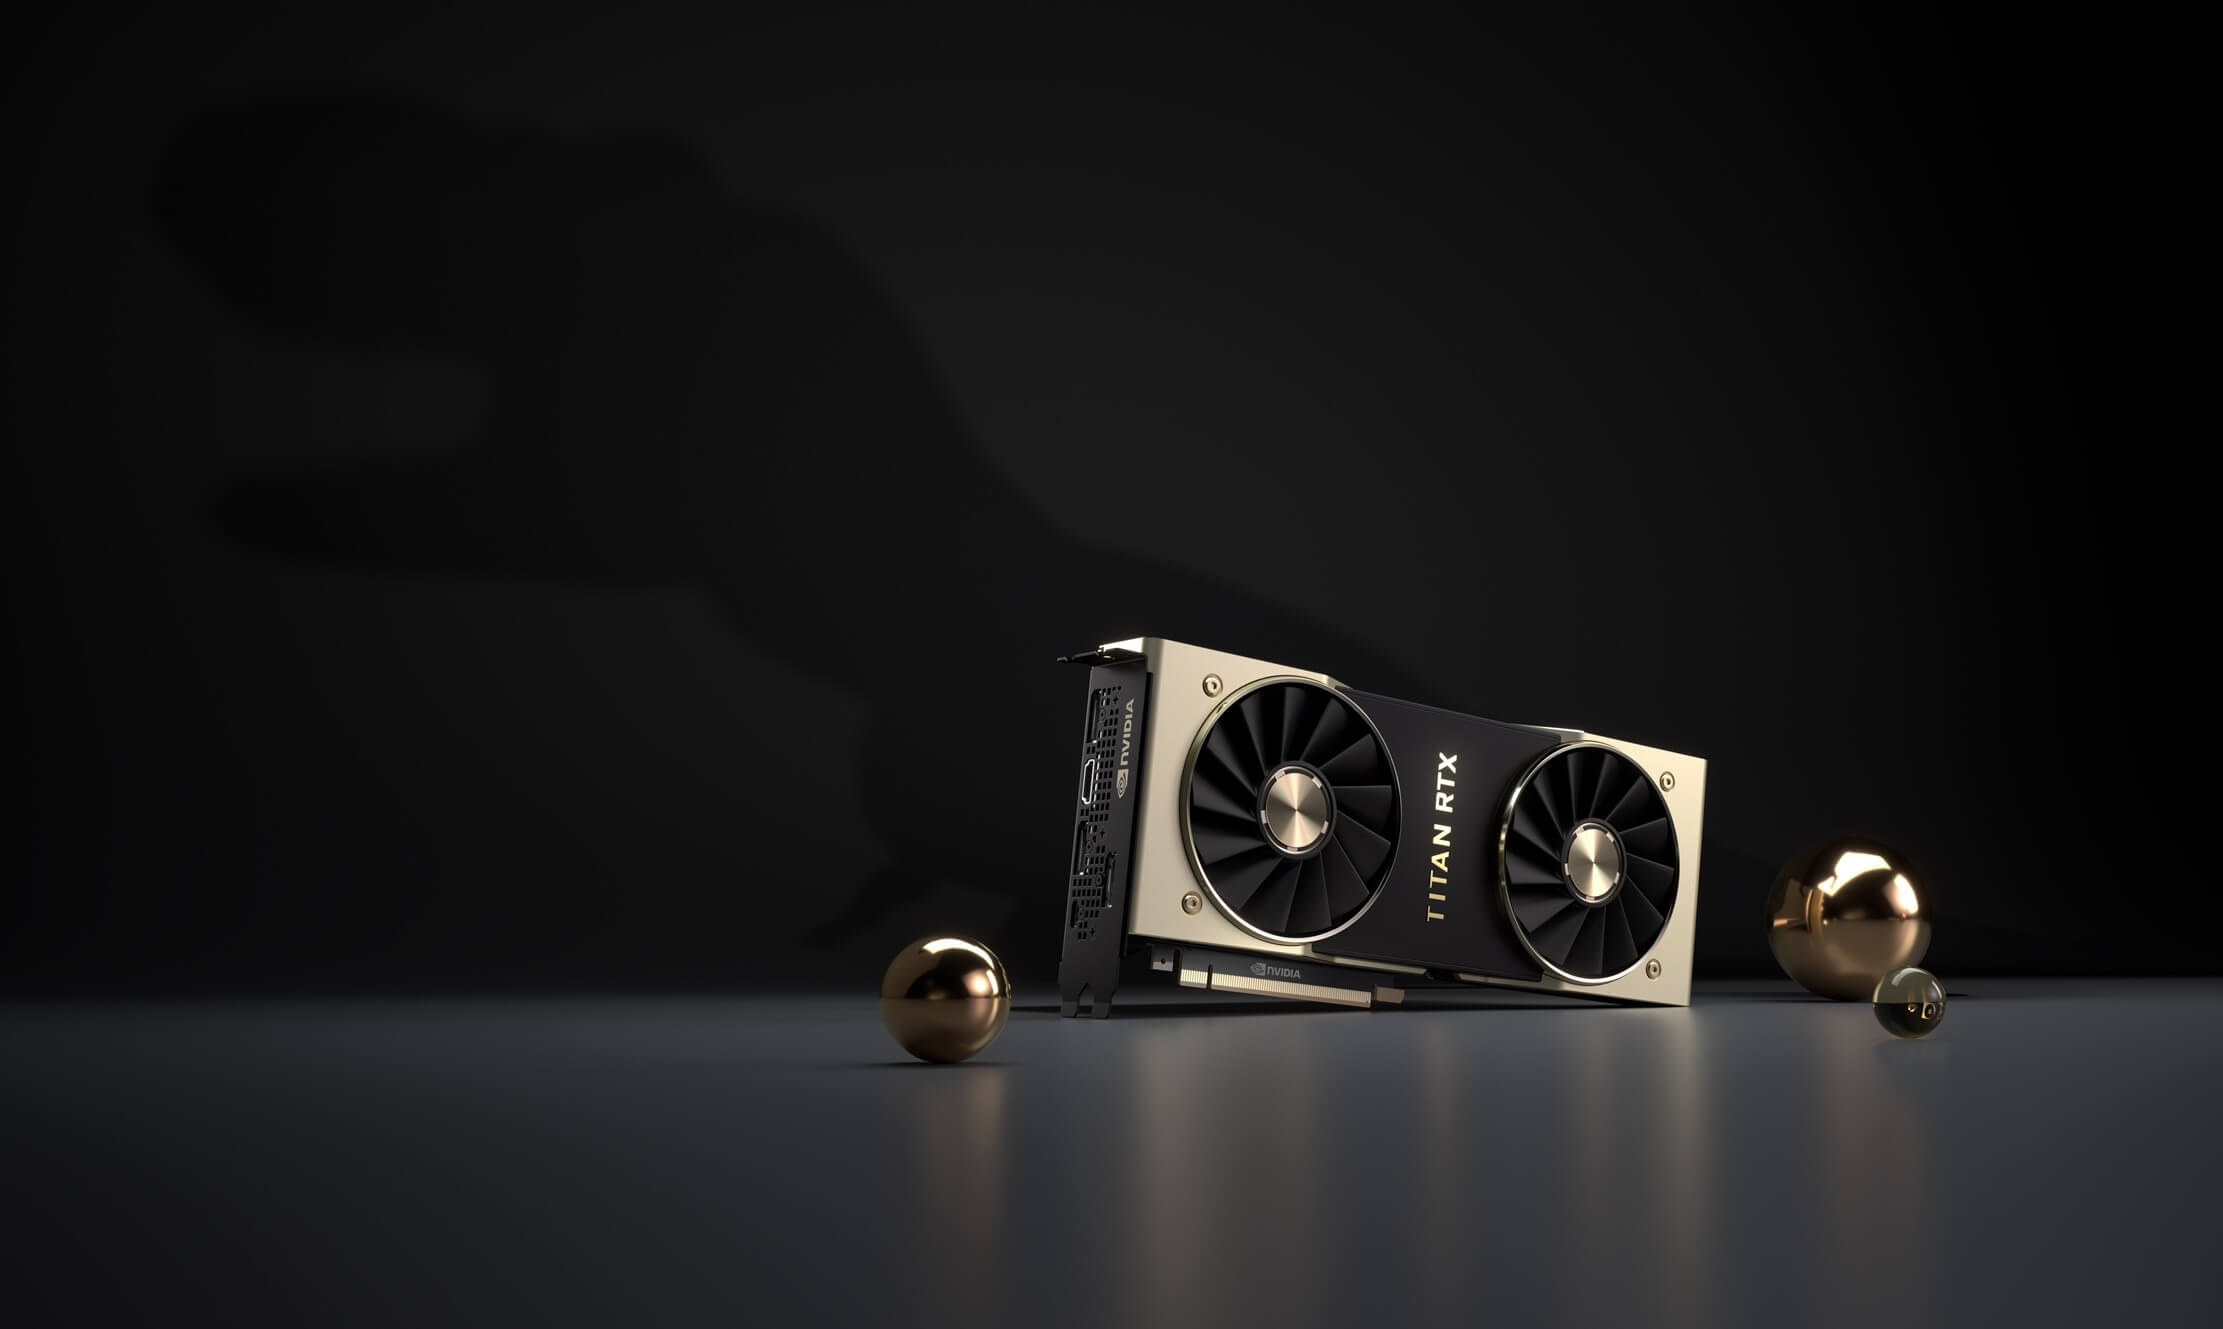 Nvidia debuts the Titan RTX as the world's most powerful desktop GPU